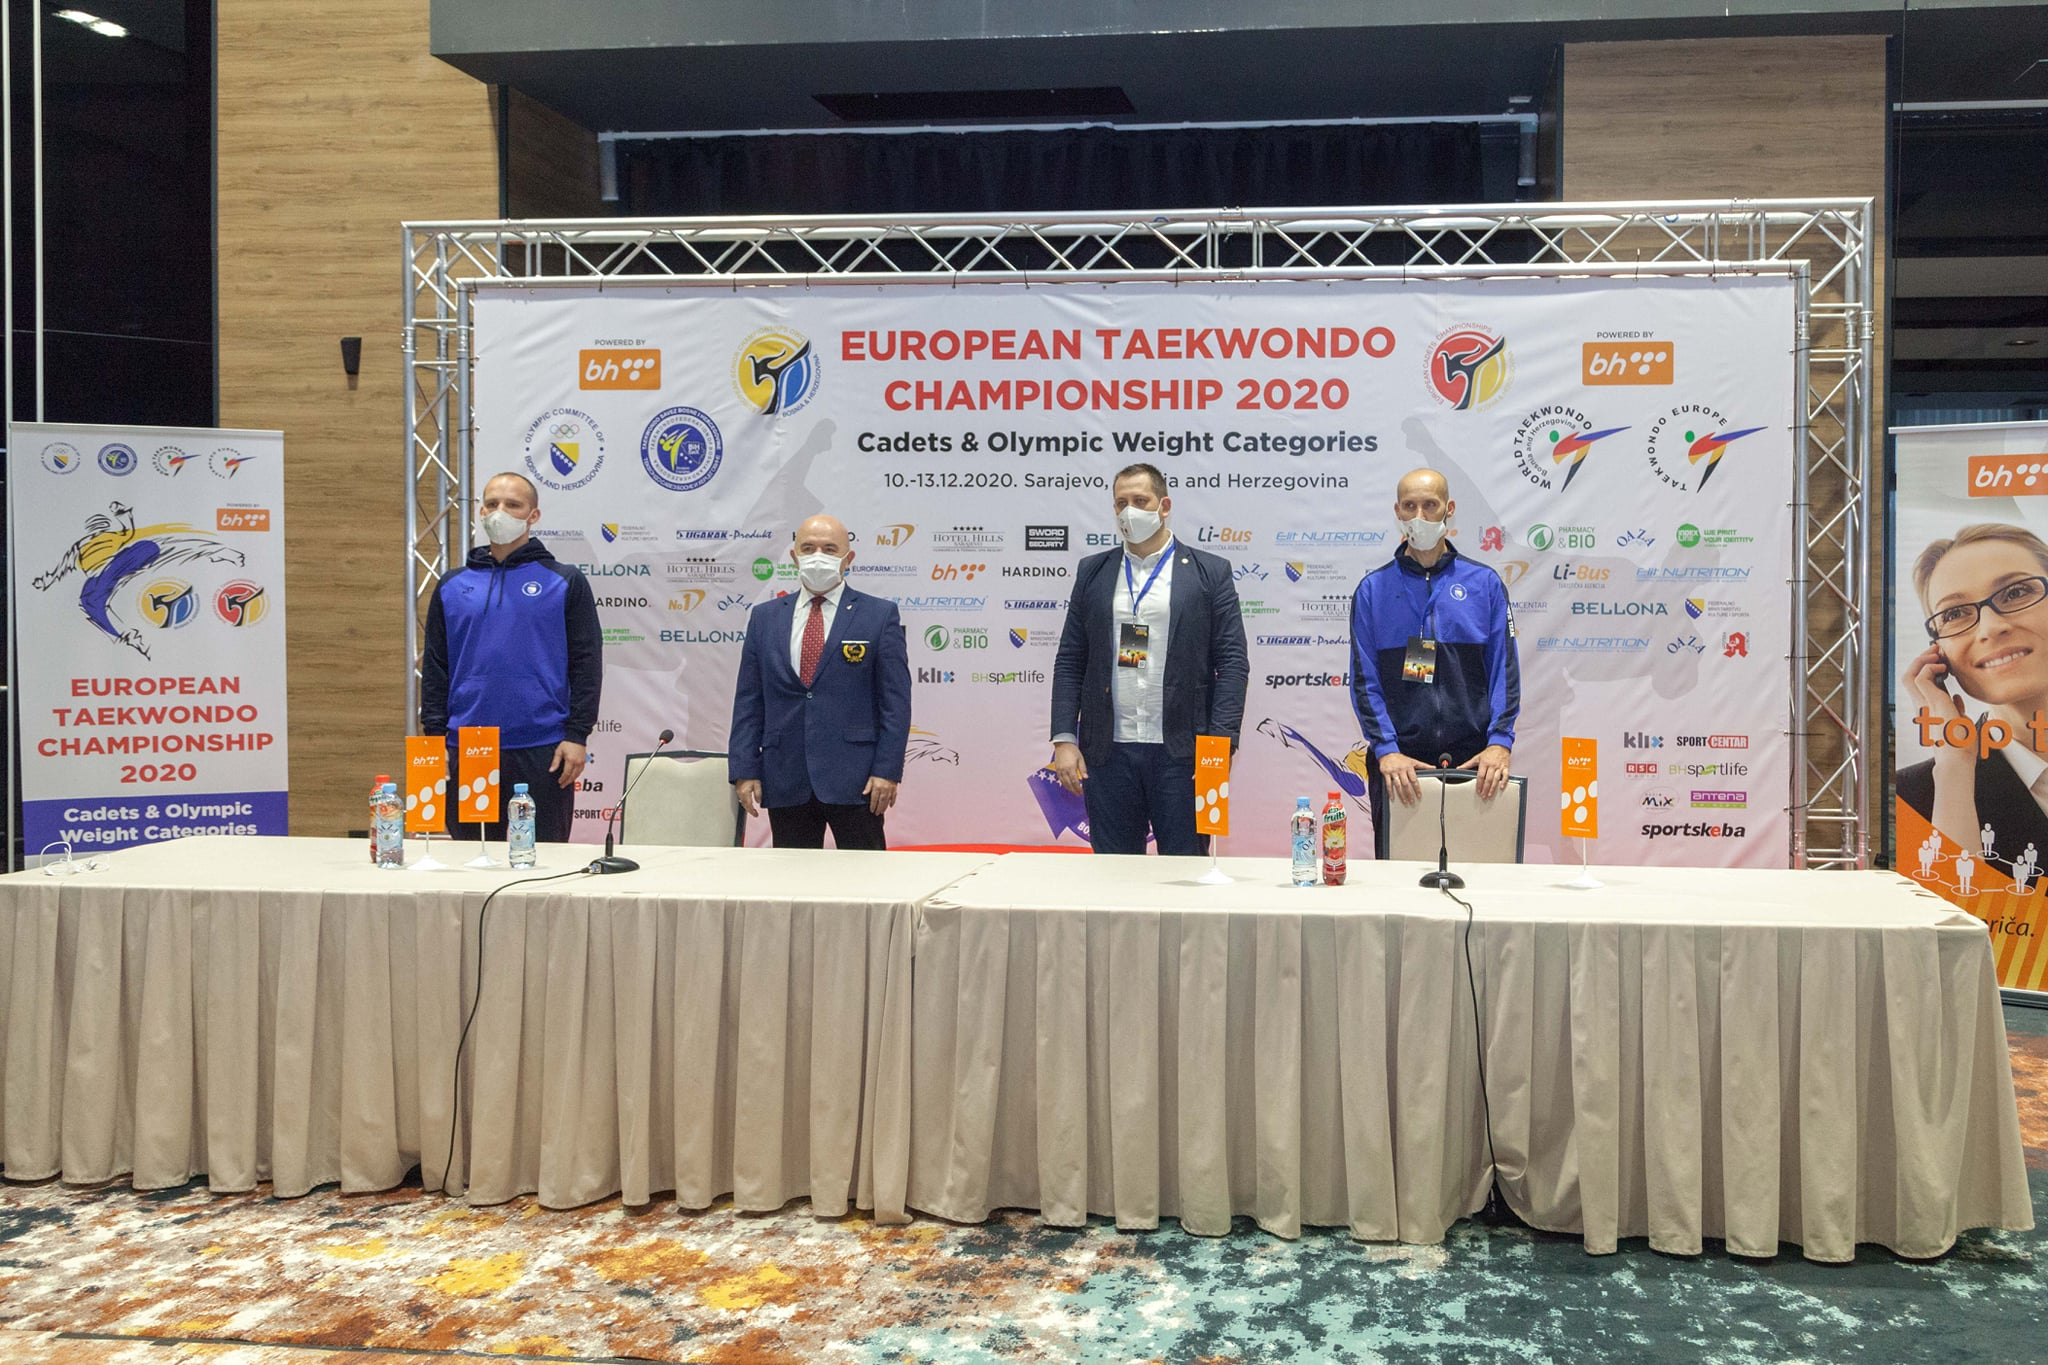 Preparations for the competition were praised by officials ©Facebook/Taekwondo Europe